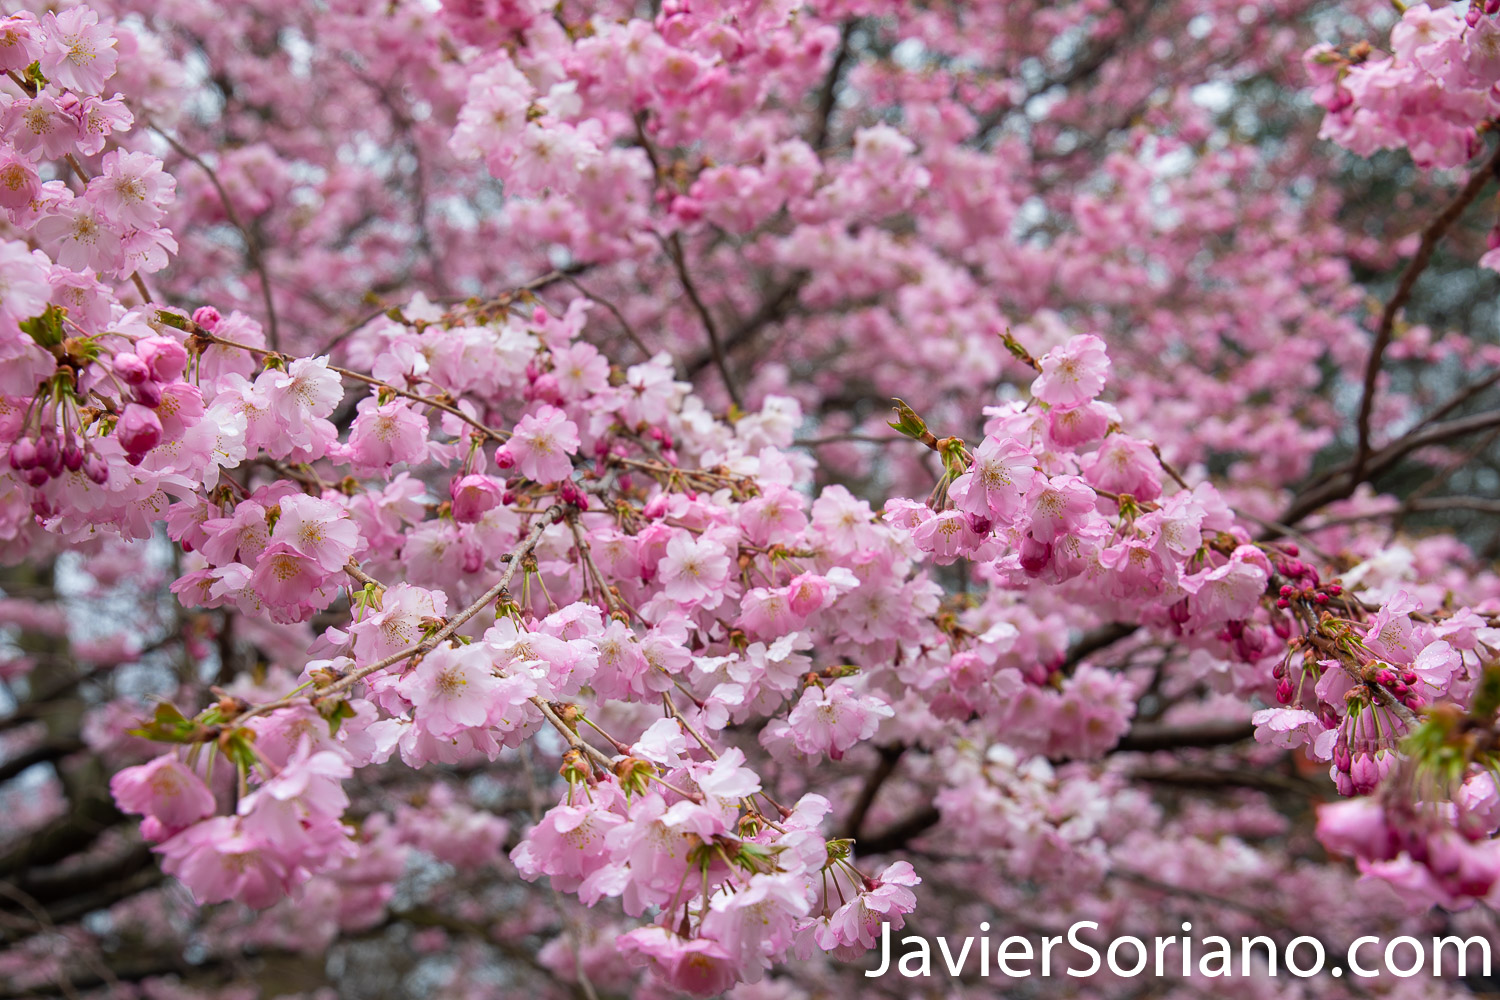 March 28, 2020. New York City - Cherry blossoms. Spring during the coronavirus pandemic in New York City. Photo by Javier Soriano/www.JavierSoriano.com